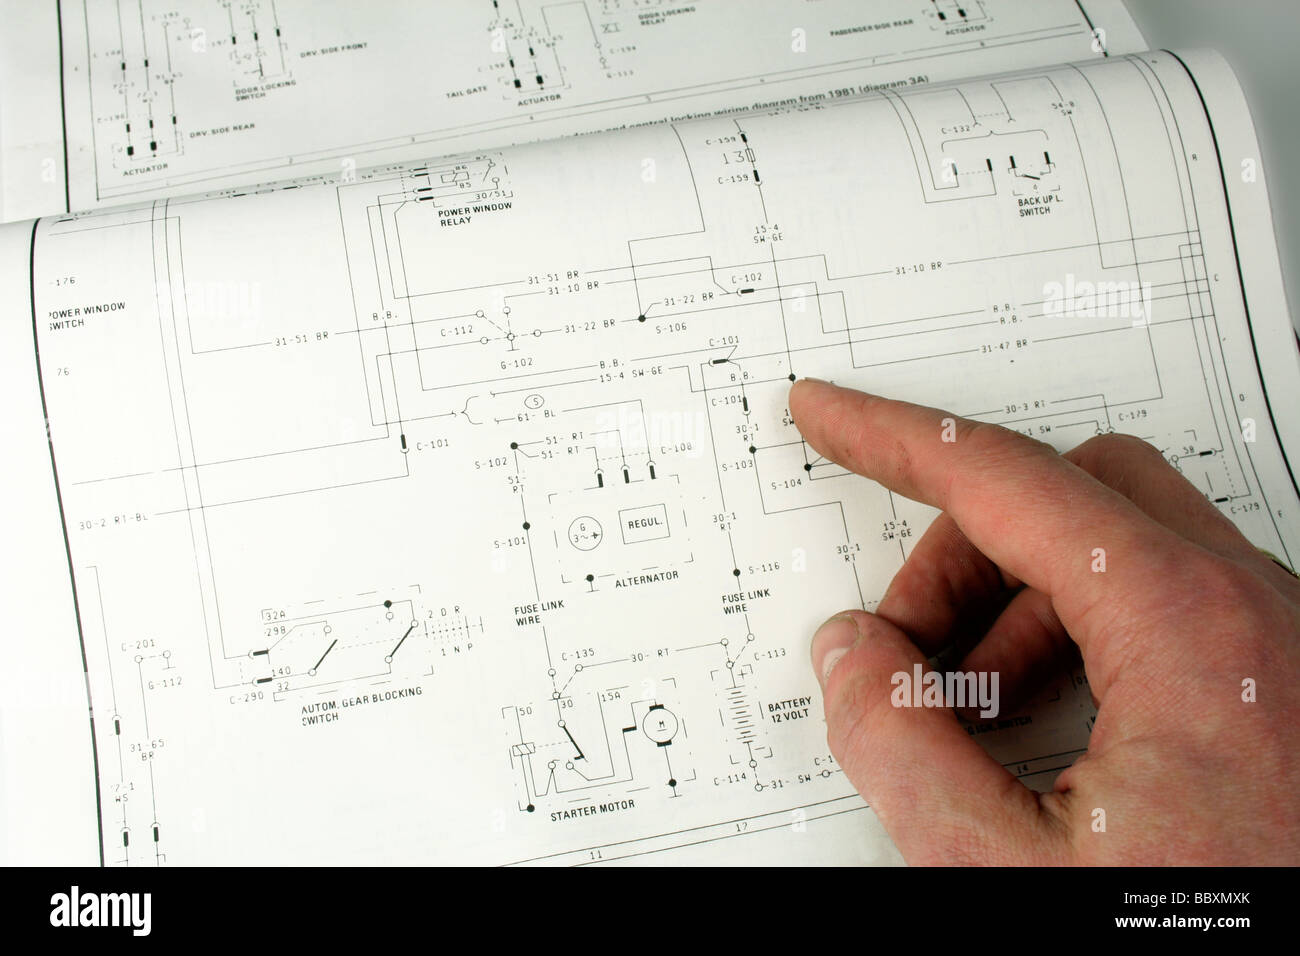 hight resolution of man referring to electrical wiring diagram stock image